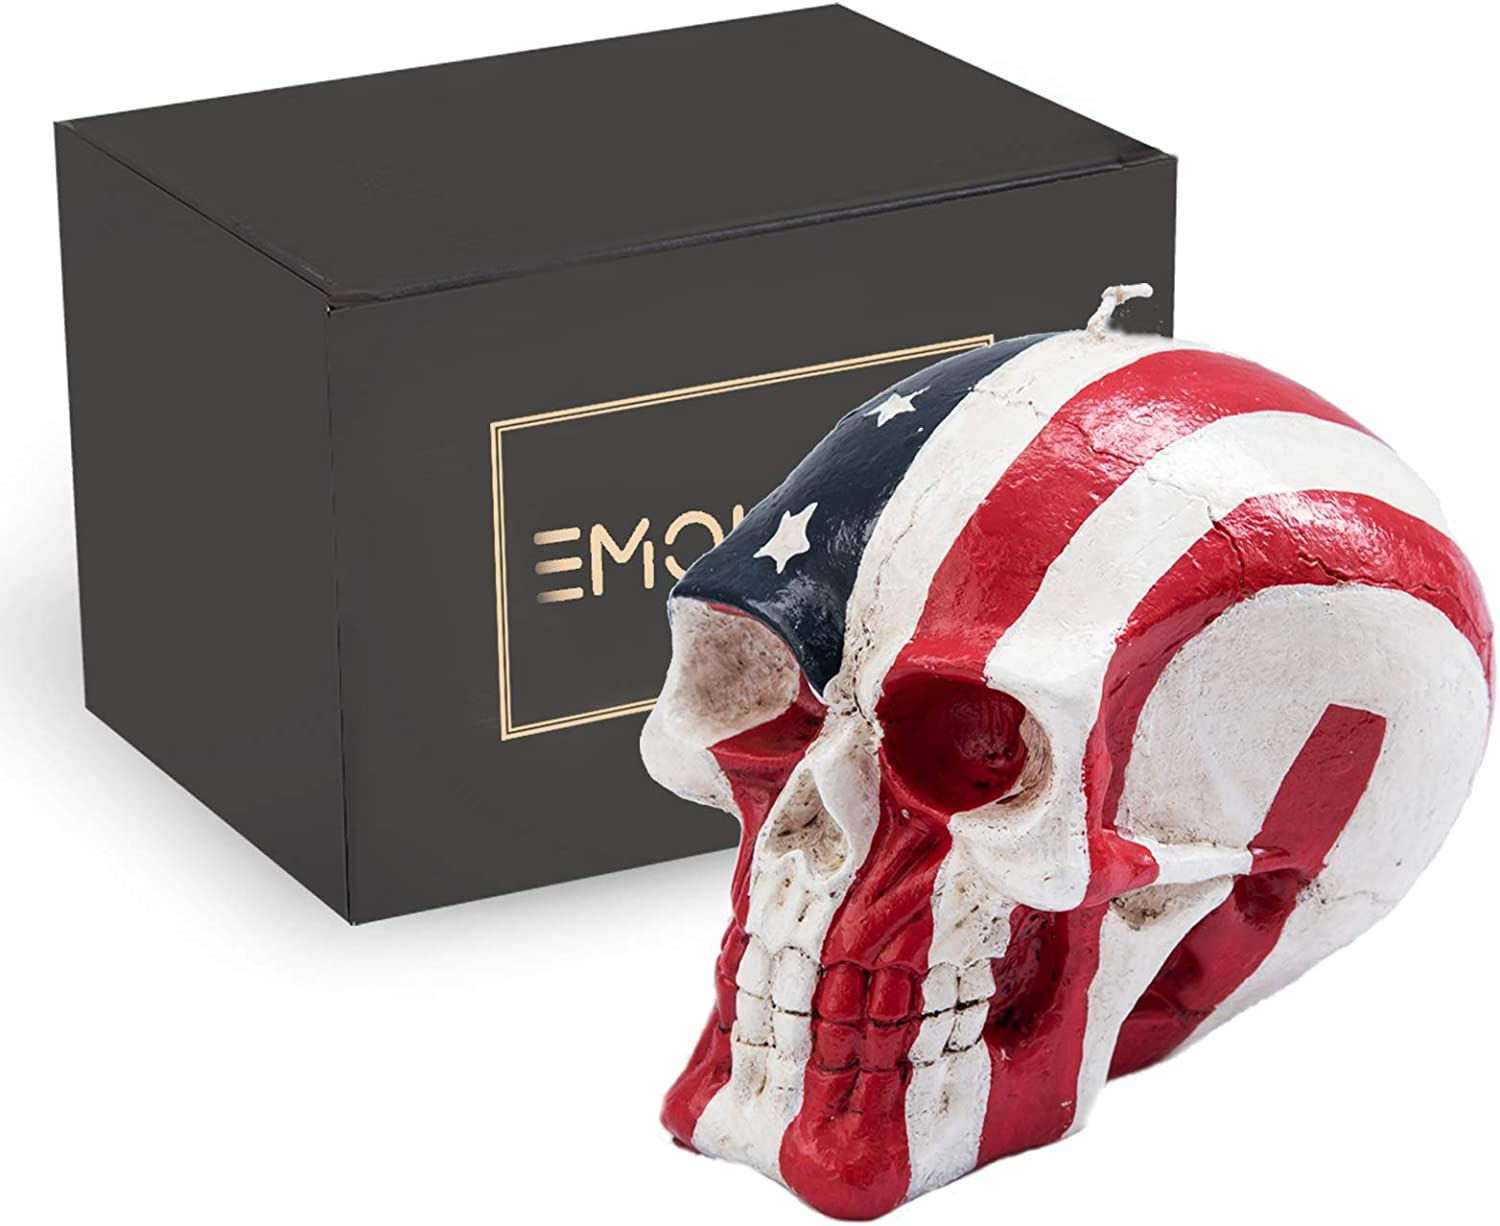 EMOHOME American Flag Skull Statue, Patriot, Decorative Candle for Halloween, Horror, Home Décor, Birthday Party, Festival, Novelty Gifts